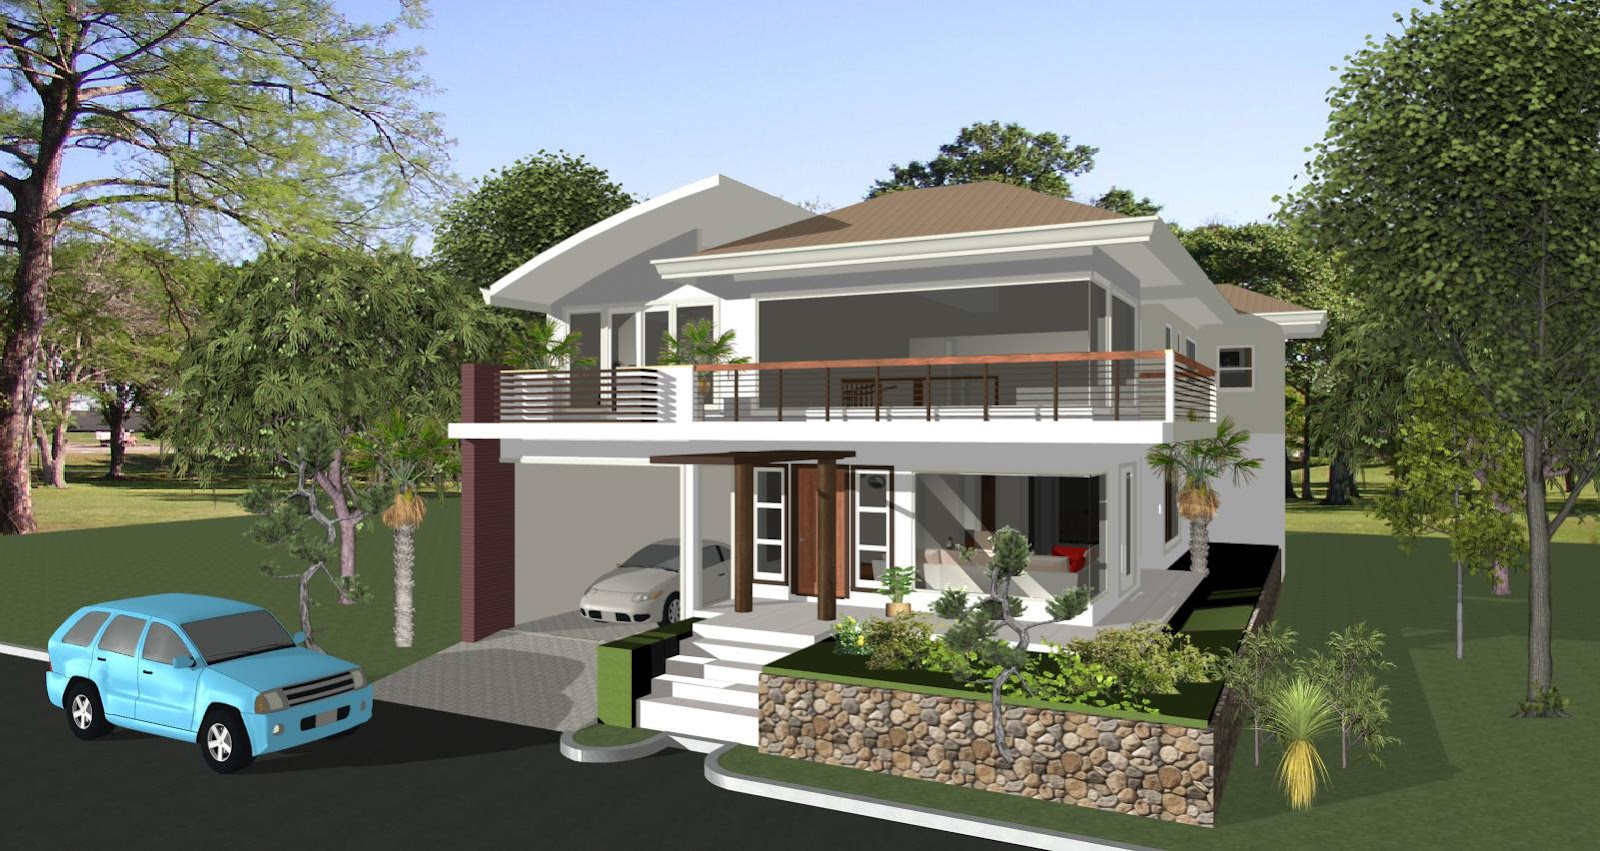 Dream Home Designs Erecre Group Realty Design And